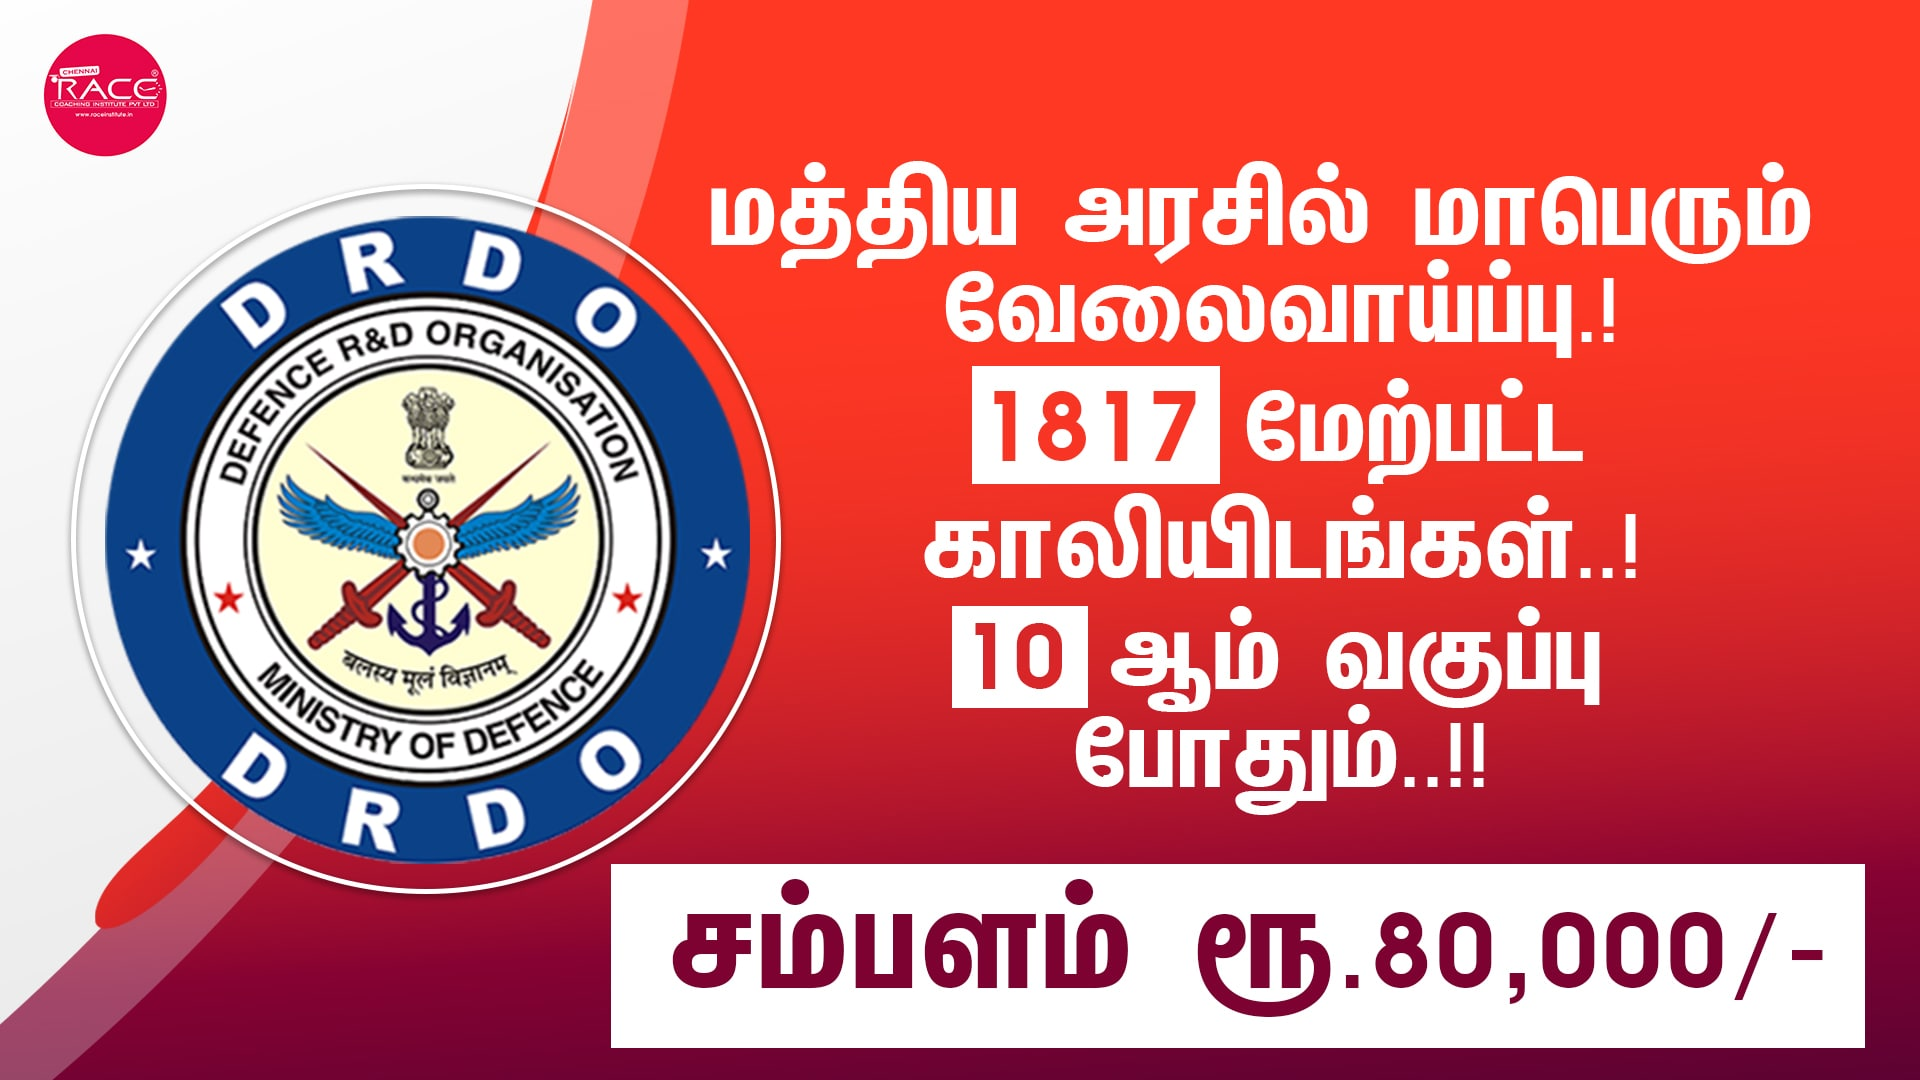 DRDO MTS Group C Recruitment 2020 - 1817 Vacancies - Official Notification